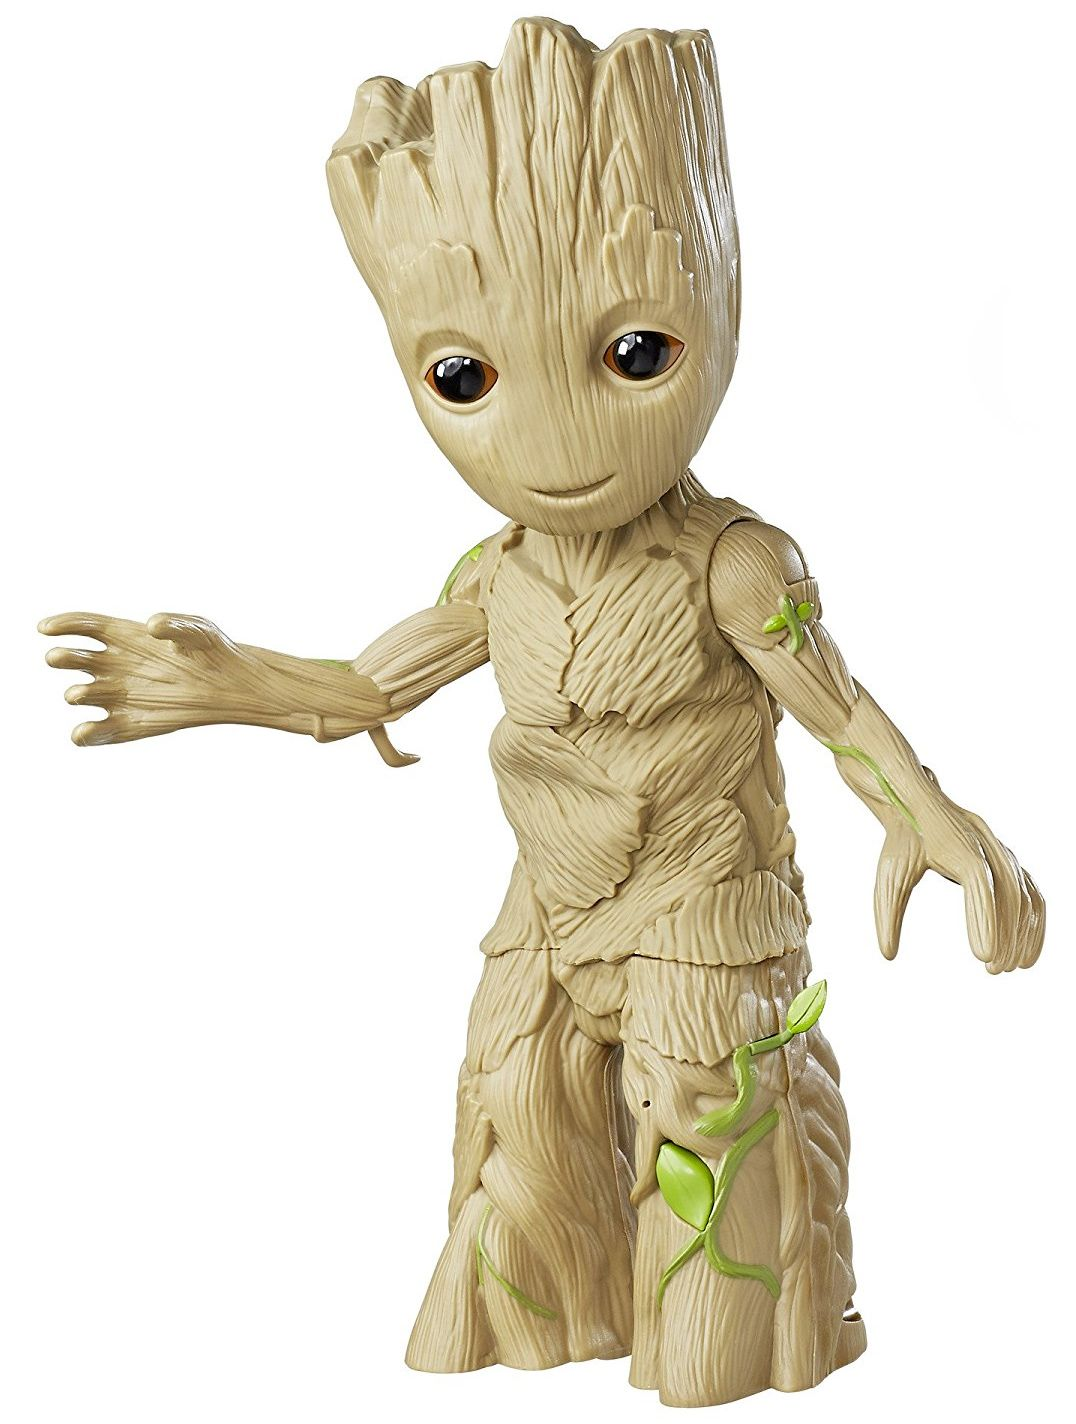 Guardians-of-the-Galaxy-2-Dancing-Baby-Groot-02